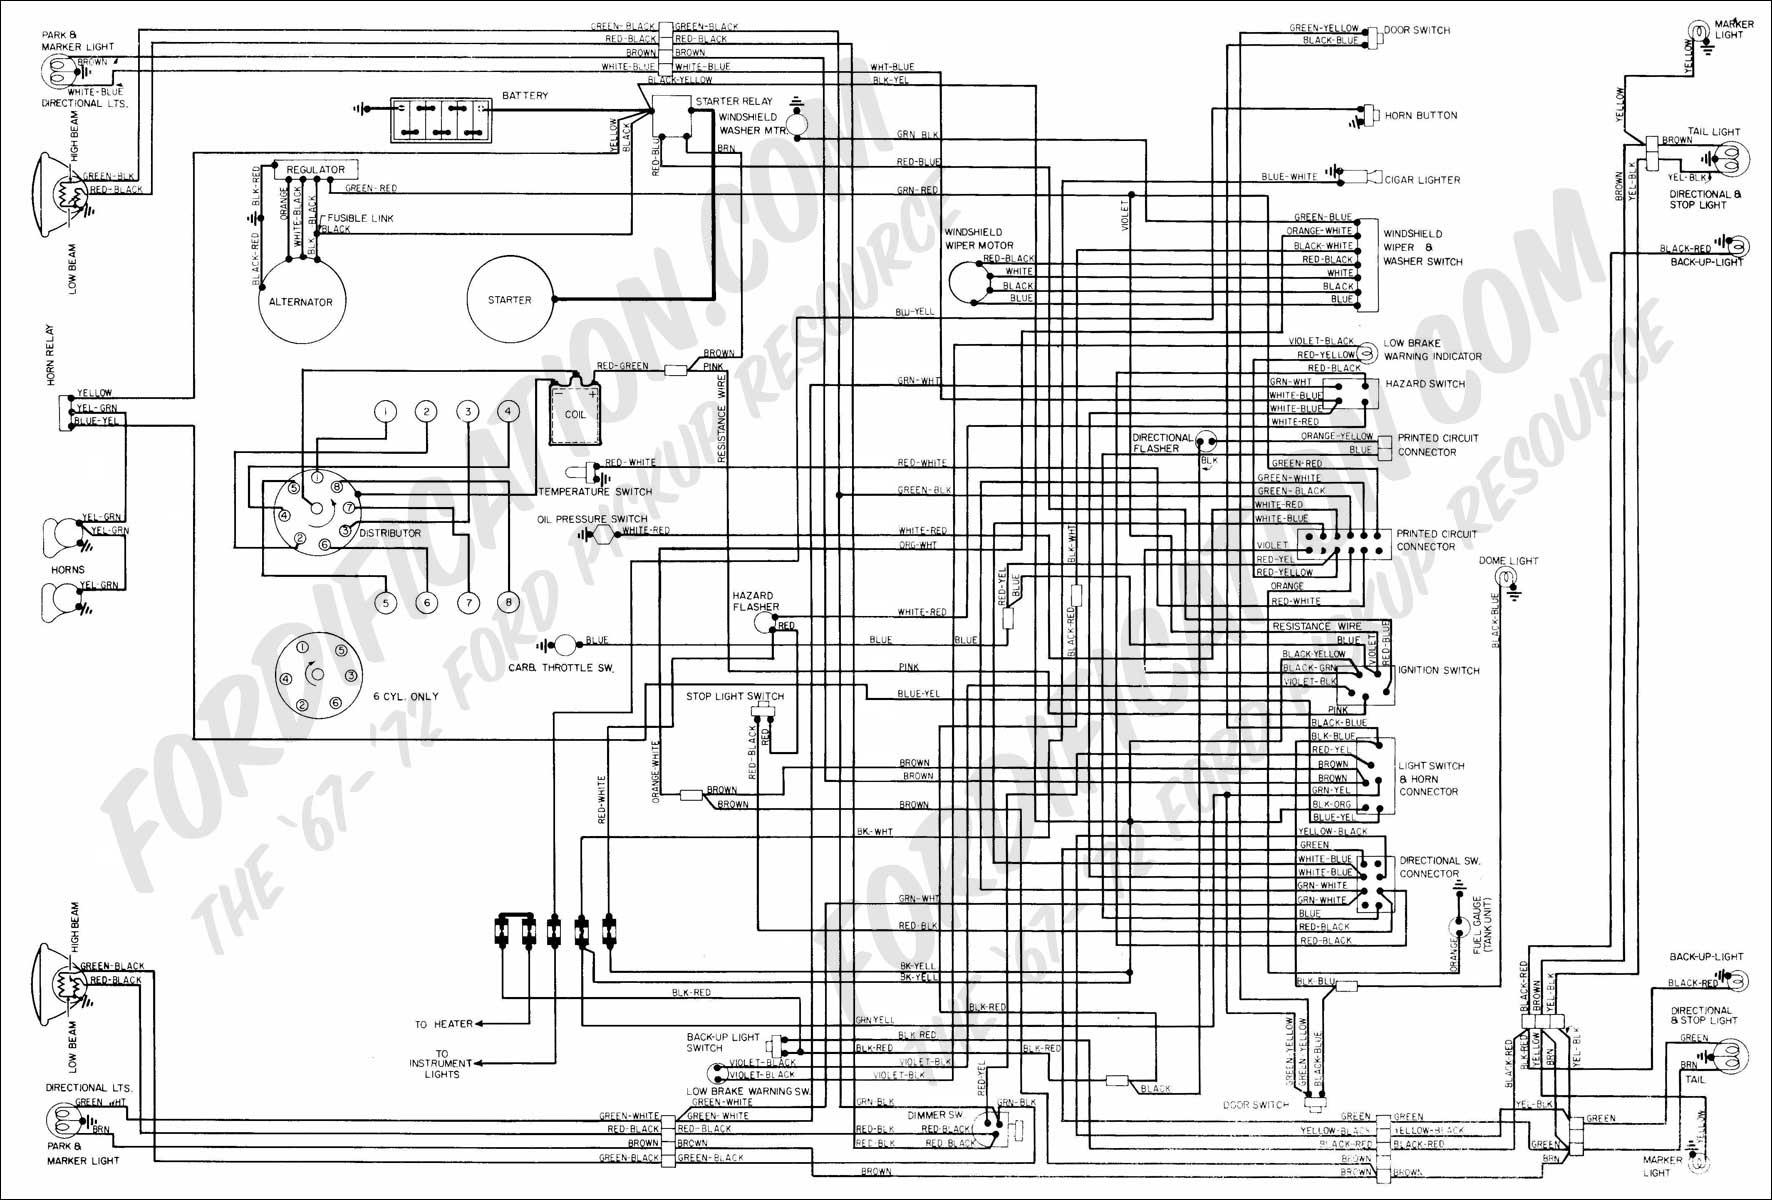 1972 Ford V8 alternator wiring diagram and voltage regulator - schematic